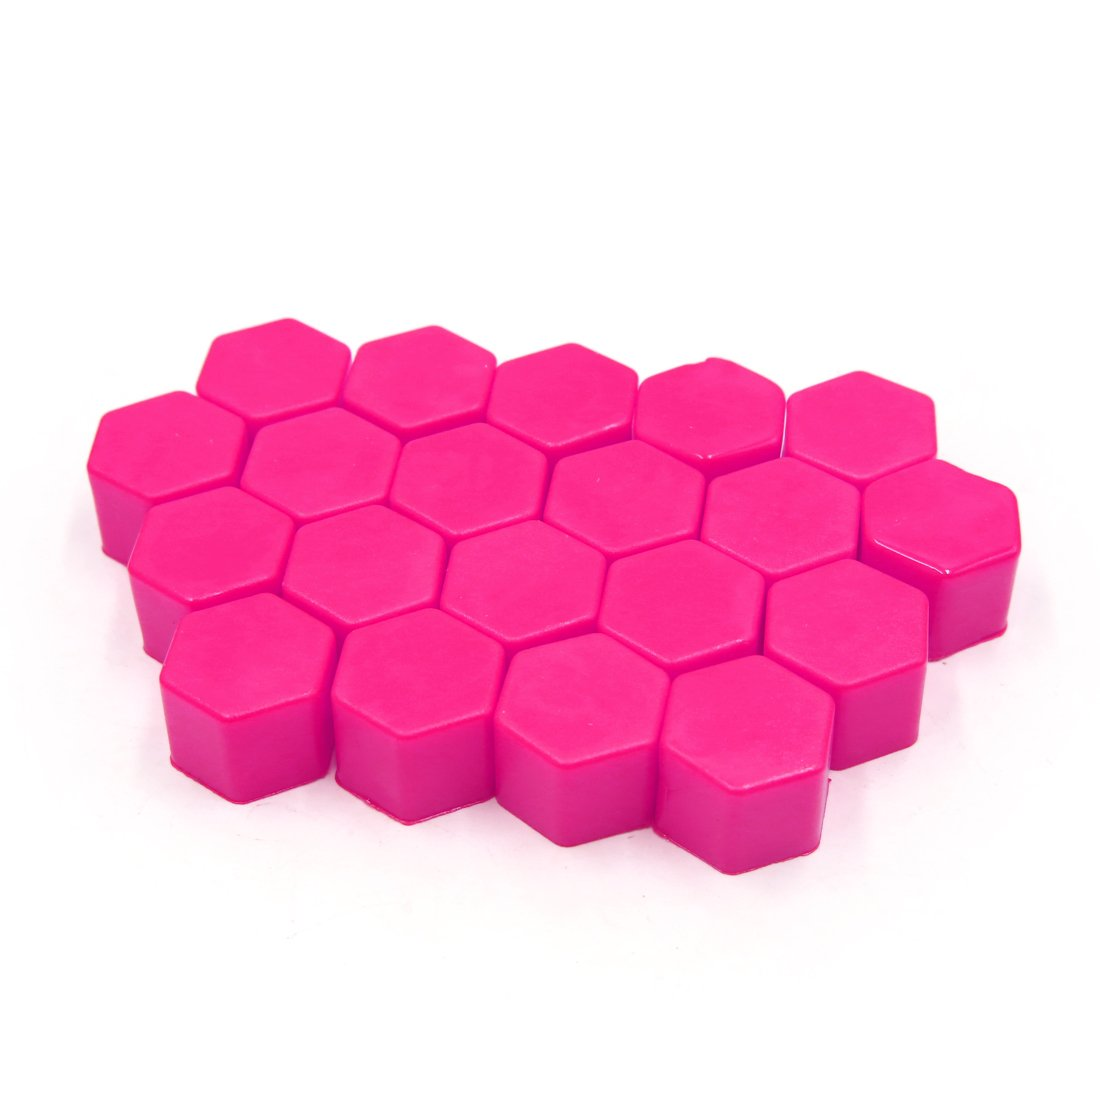 uxcell 20Pcs 17mm Pink Luminous Car Wheel Lug Nut Bolt Hub Screw Cover Protective Cap